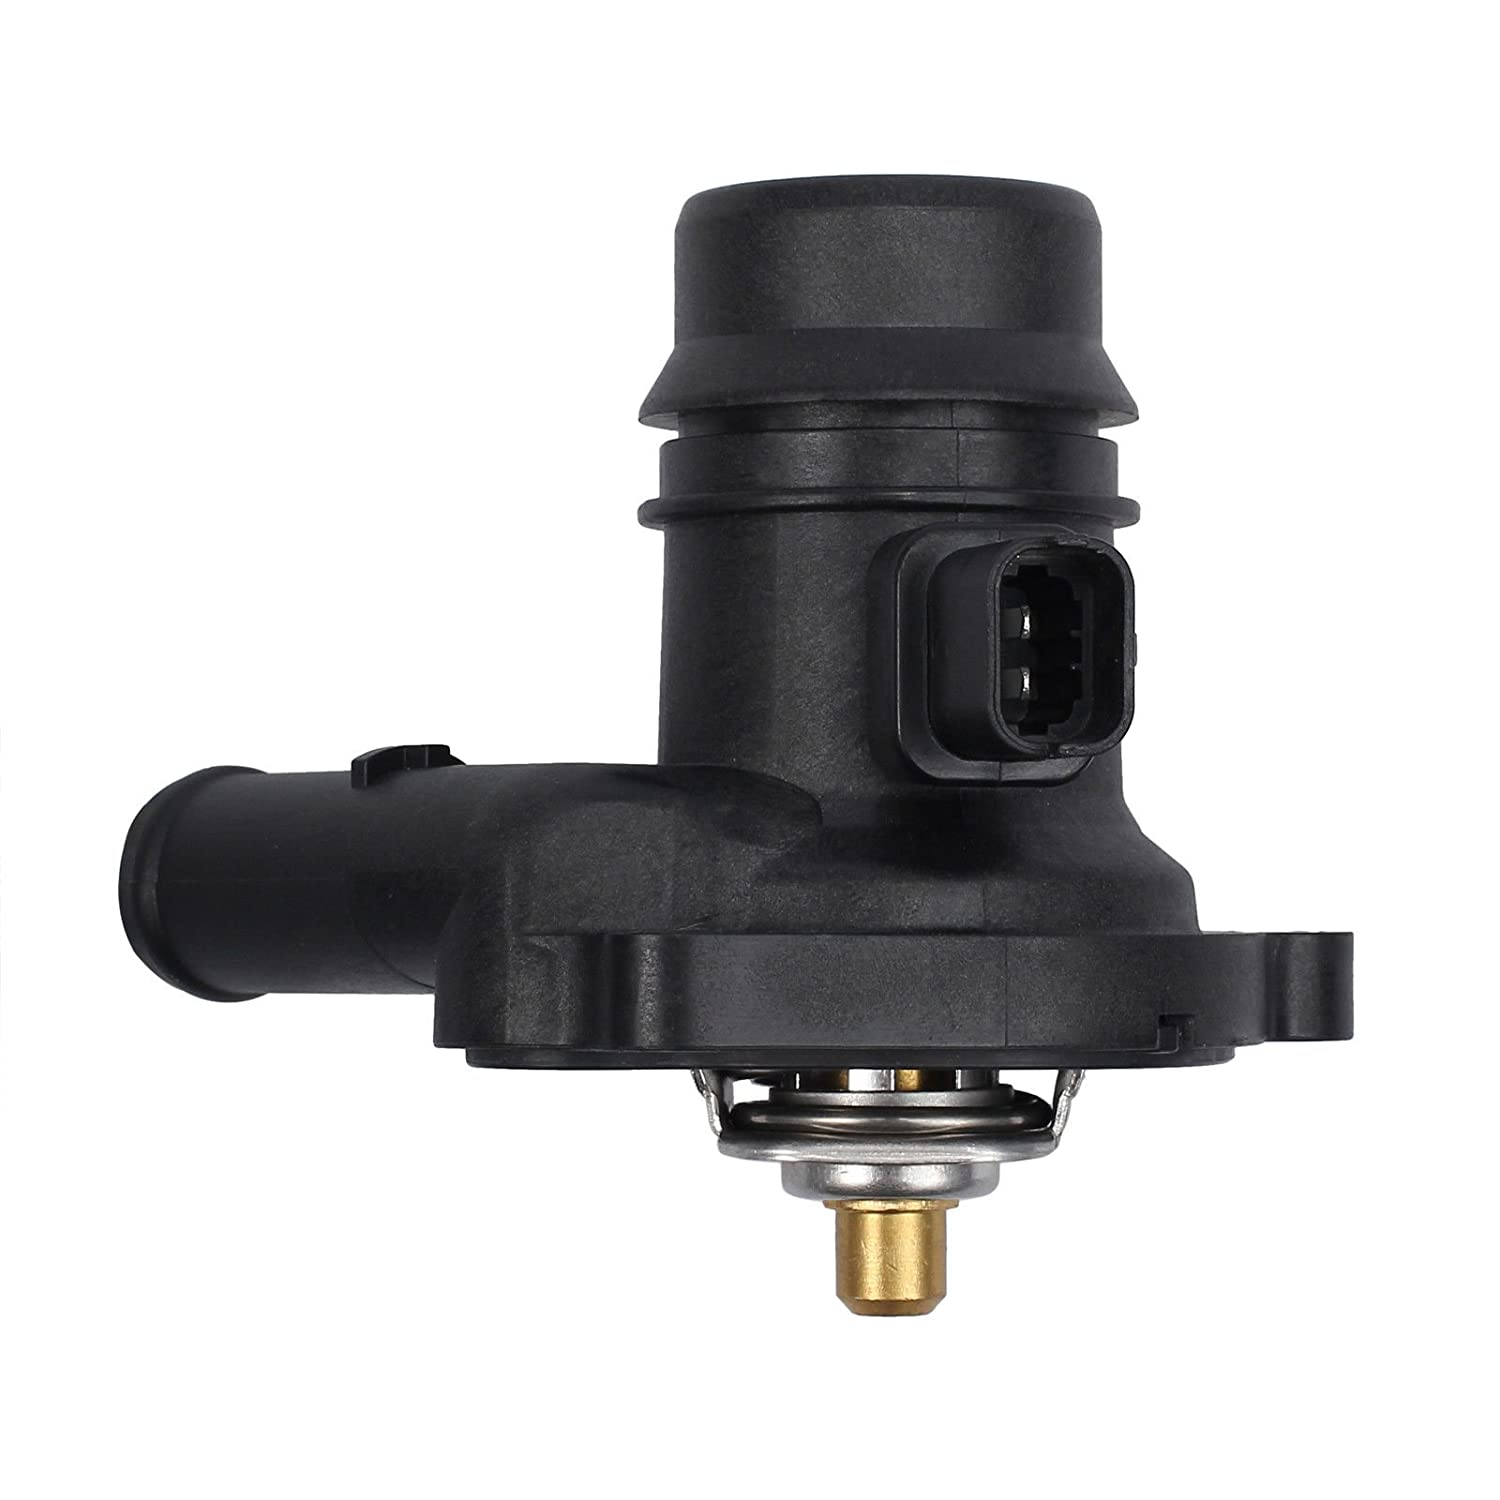 2011-15 Chevy Cruze L4 1.4L 2016 Chevy Cruze Limited Thermostat Housing/&Gasket 2012-17 Chevy Sonic L4 1.4L 55565336 AUTOUTLET Thermostat Engine Coolant Housing Water Outlet for 2013-17 Buick Encore